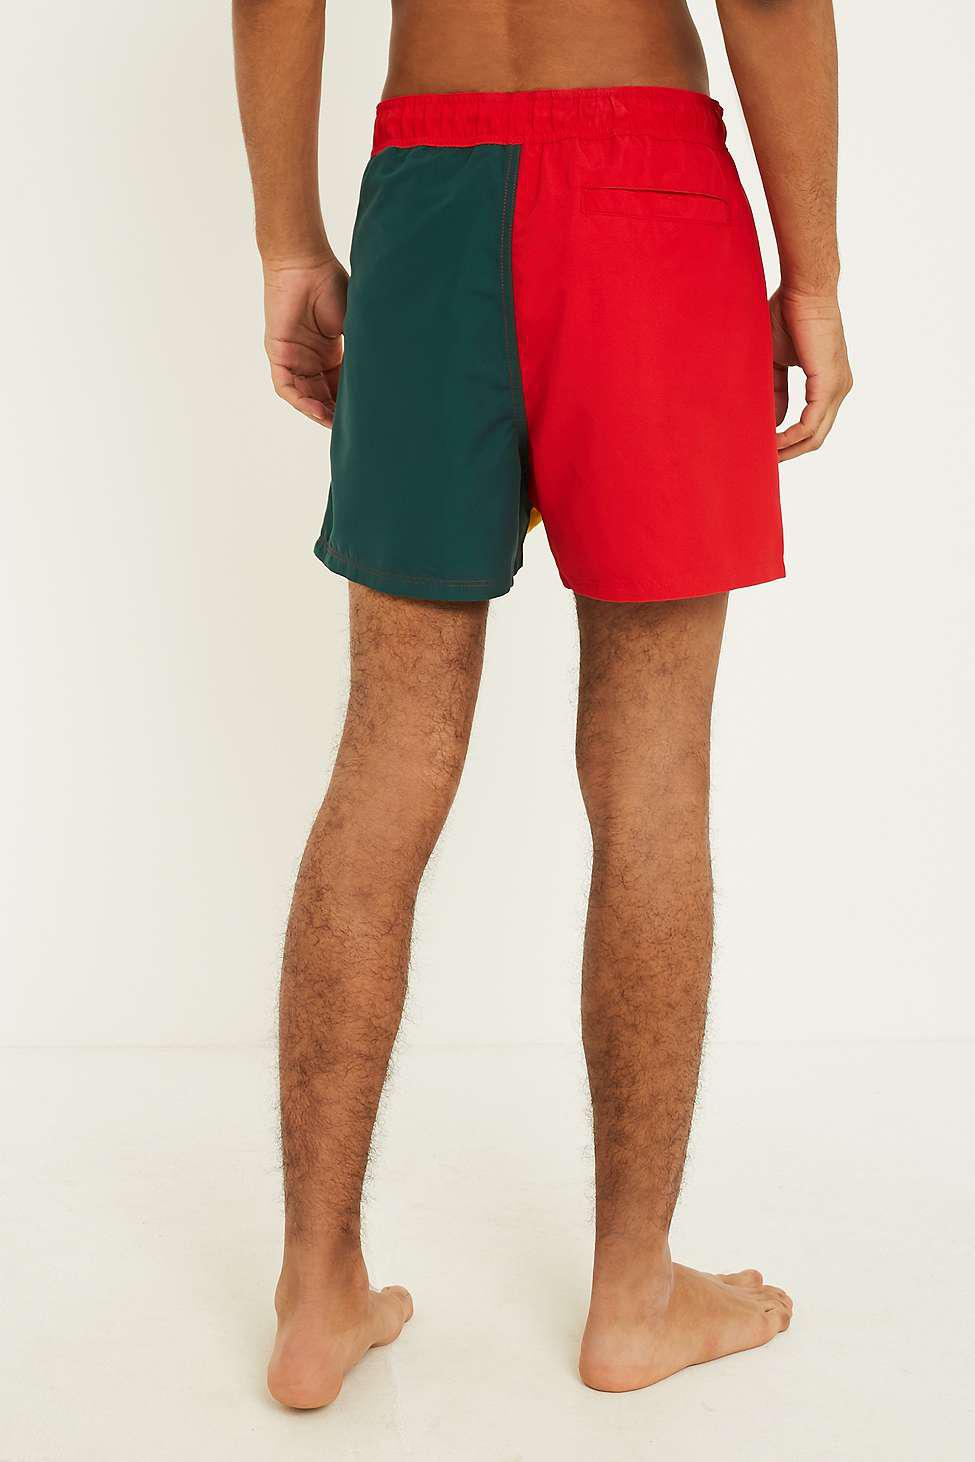 c878a83675 Fila Colourblock Swim Shorts - Mens L in Orange for Men - Lyst